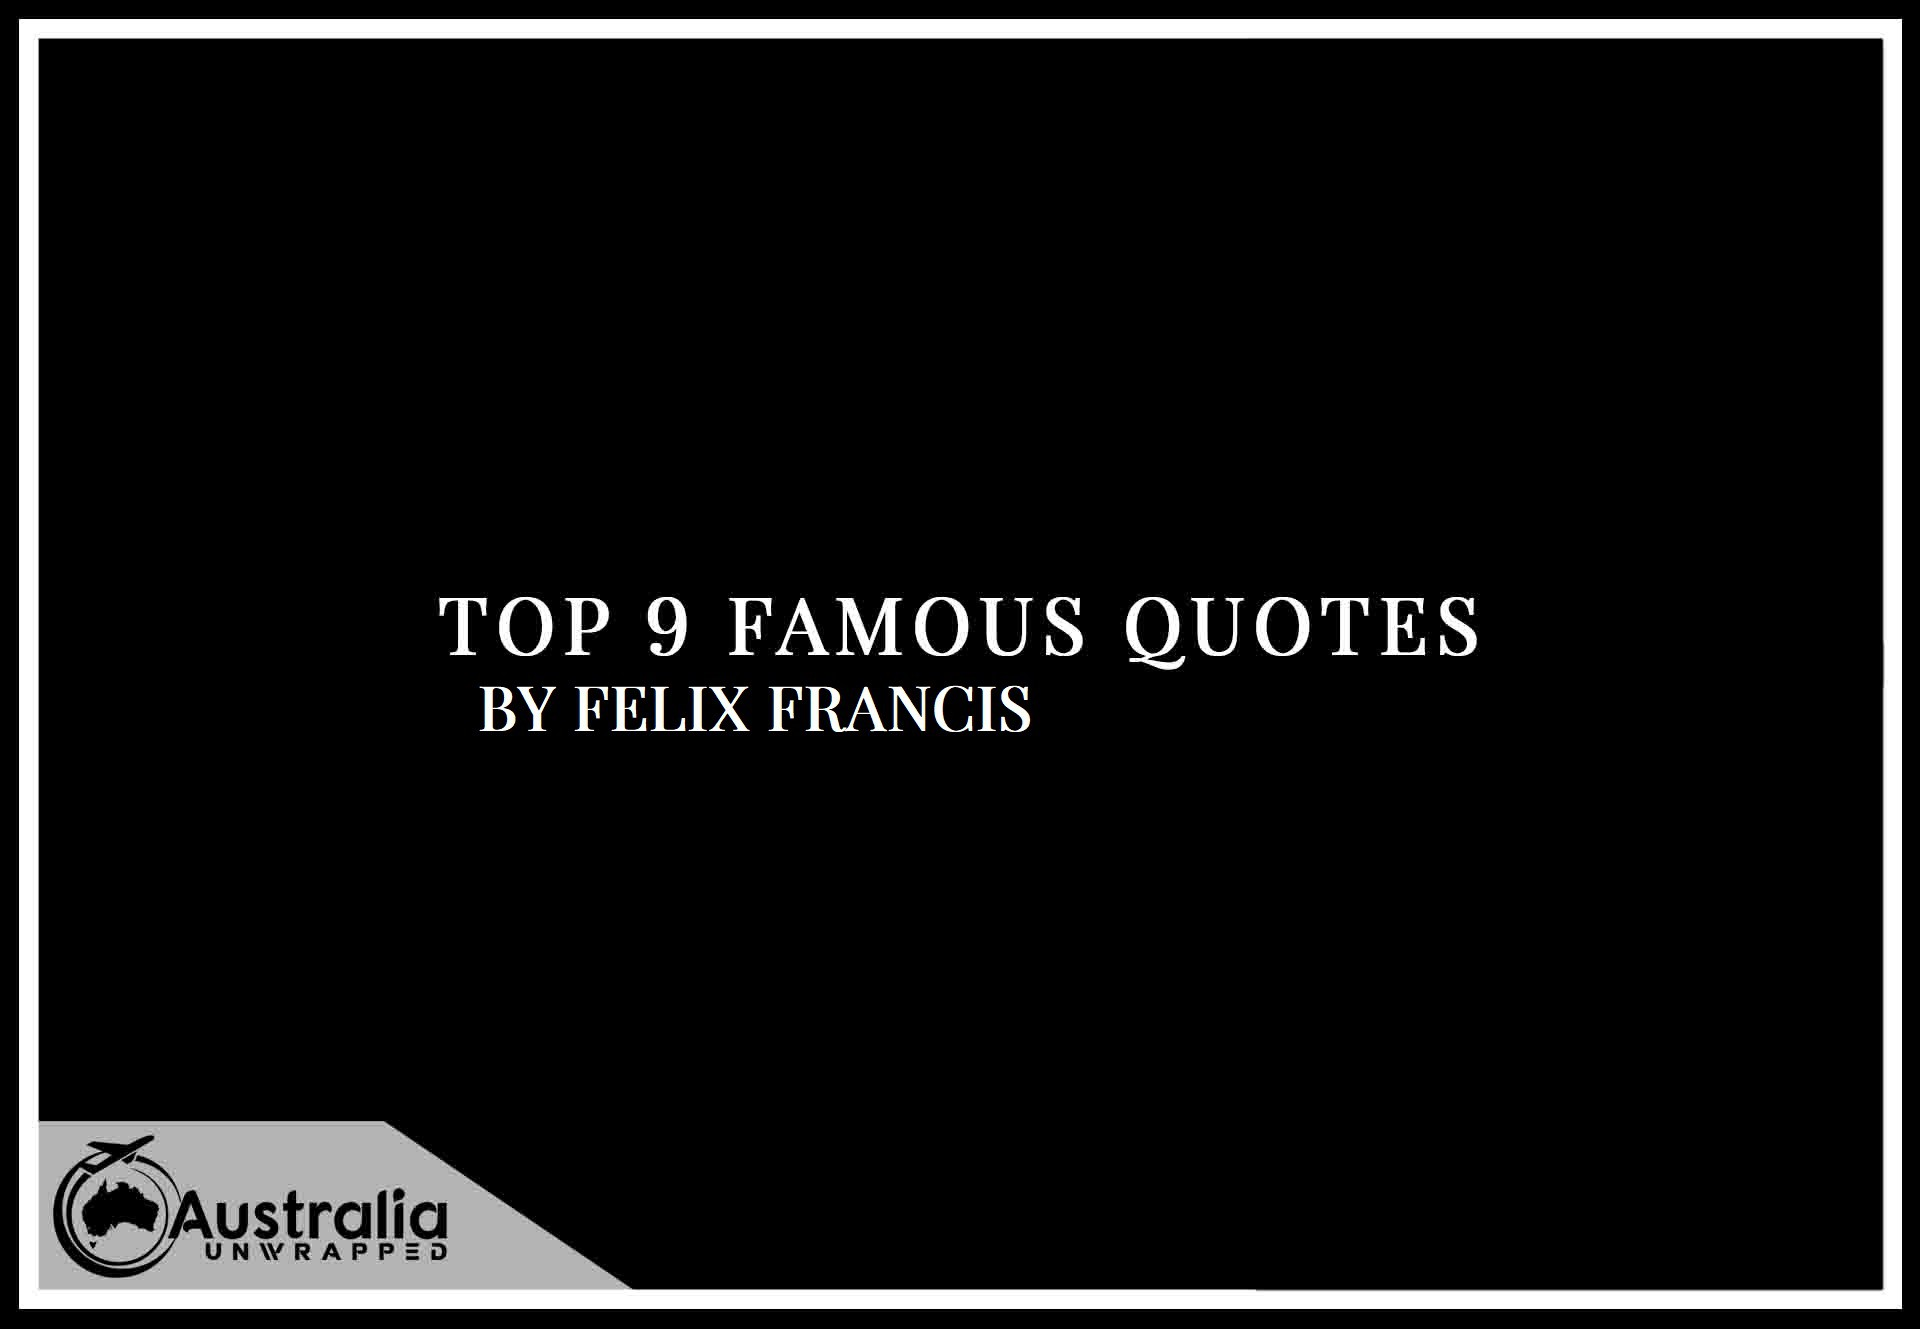 Top 9 Famous Quotes by Author Felix Francis